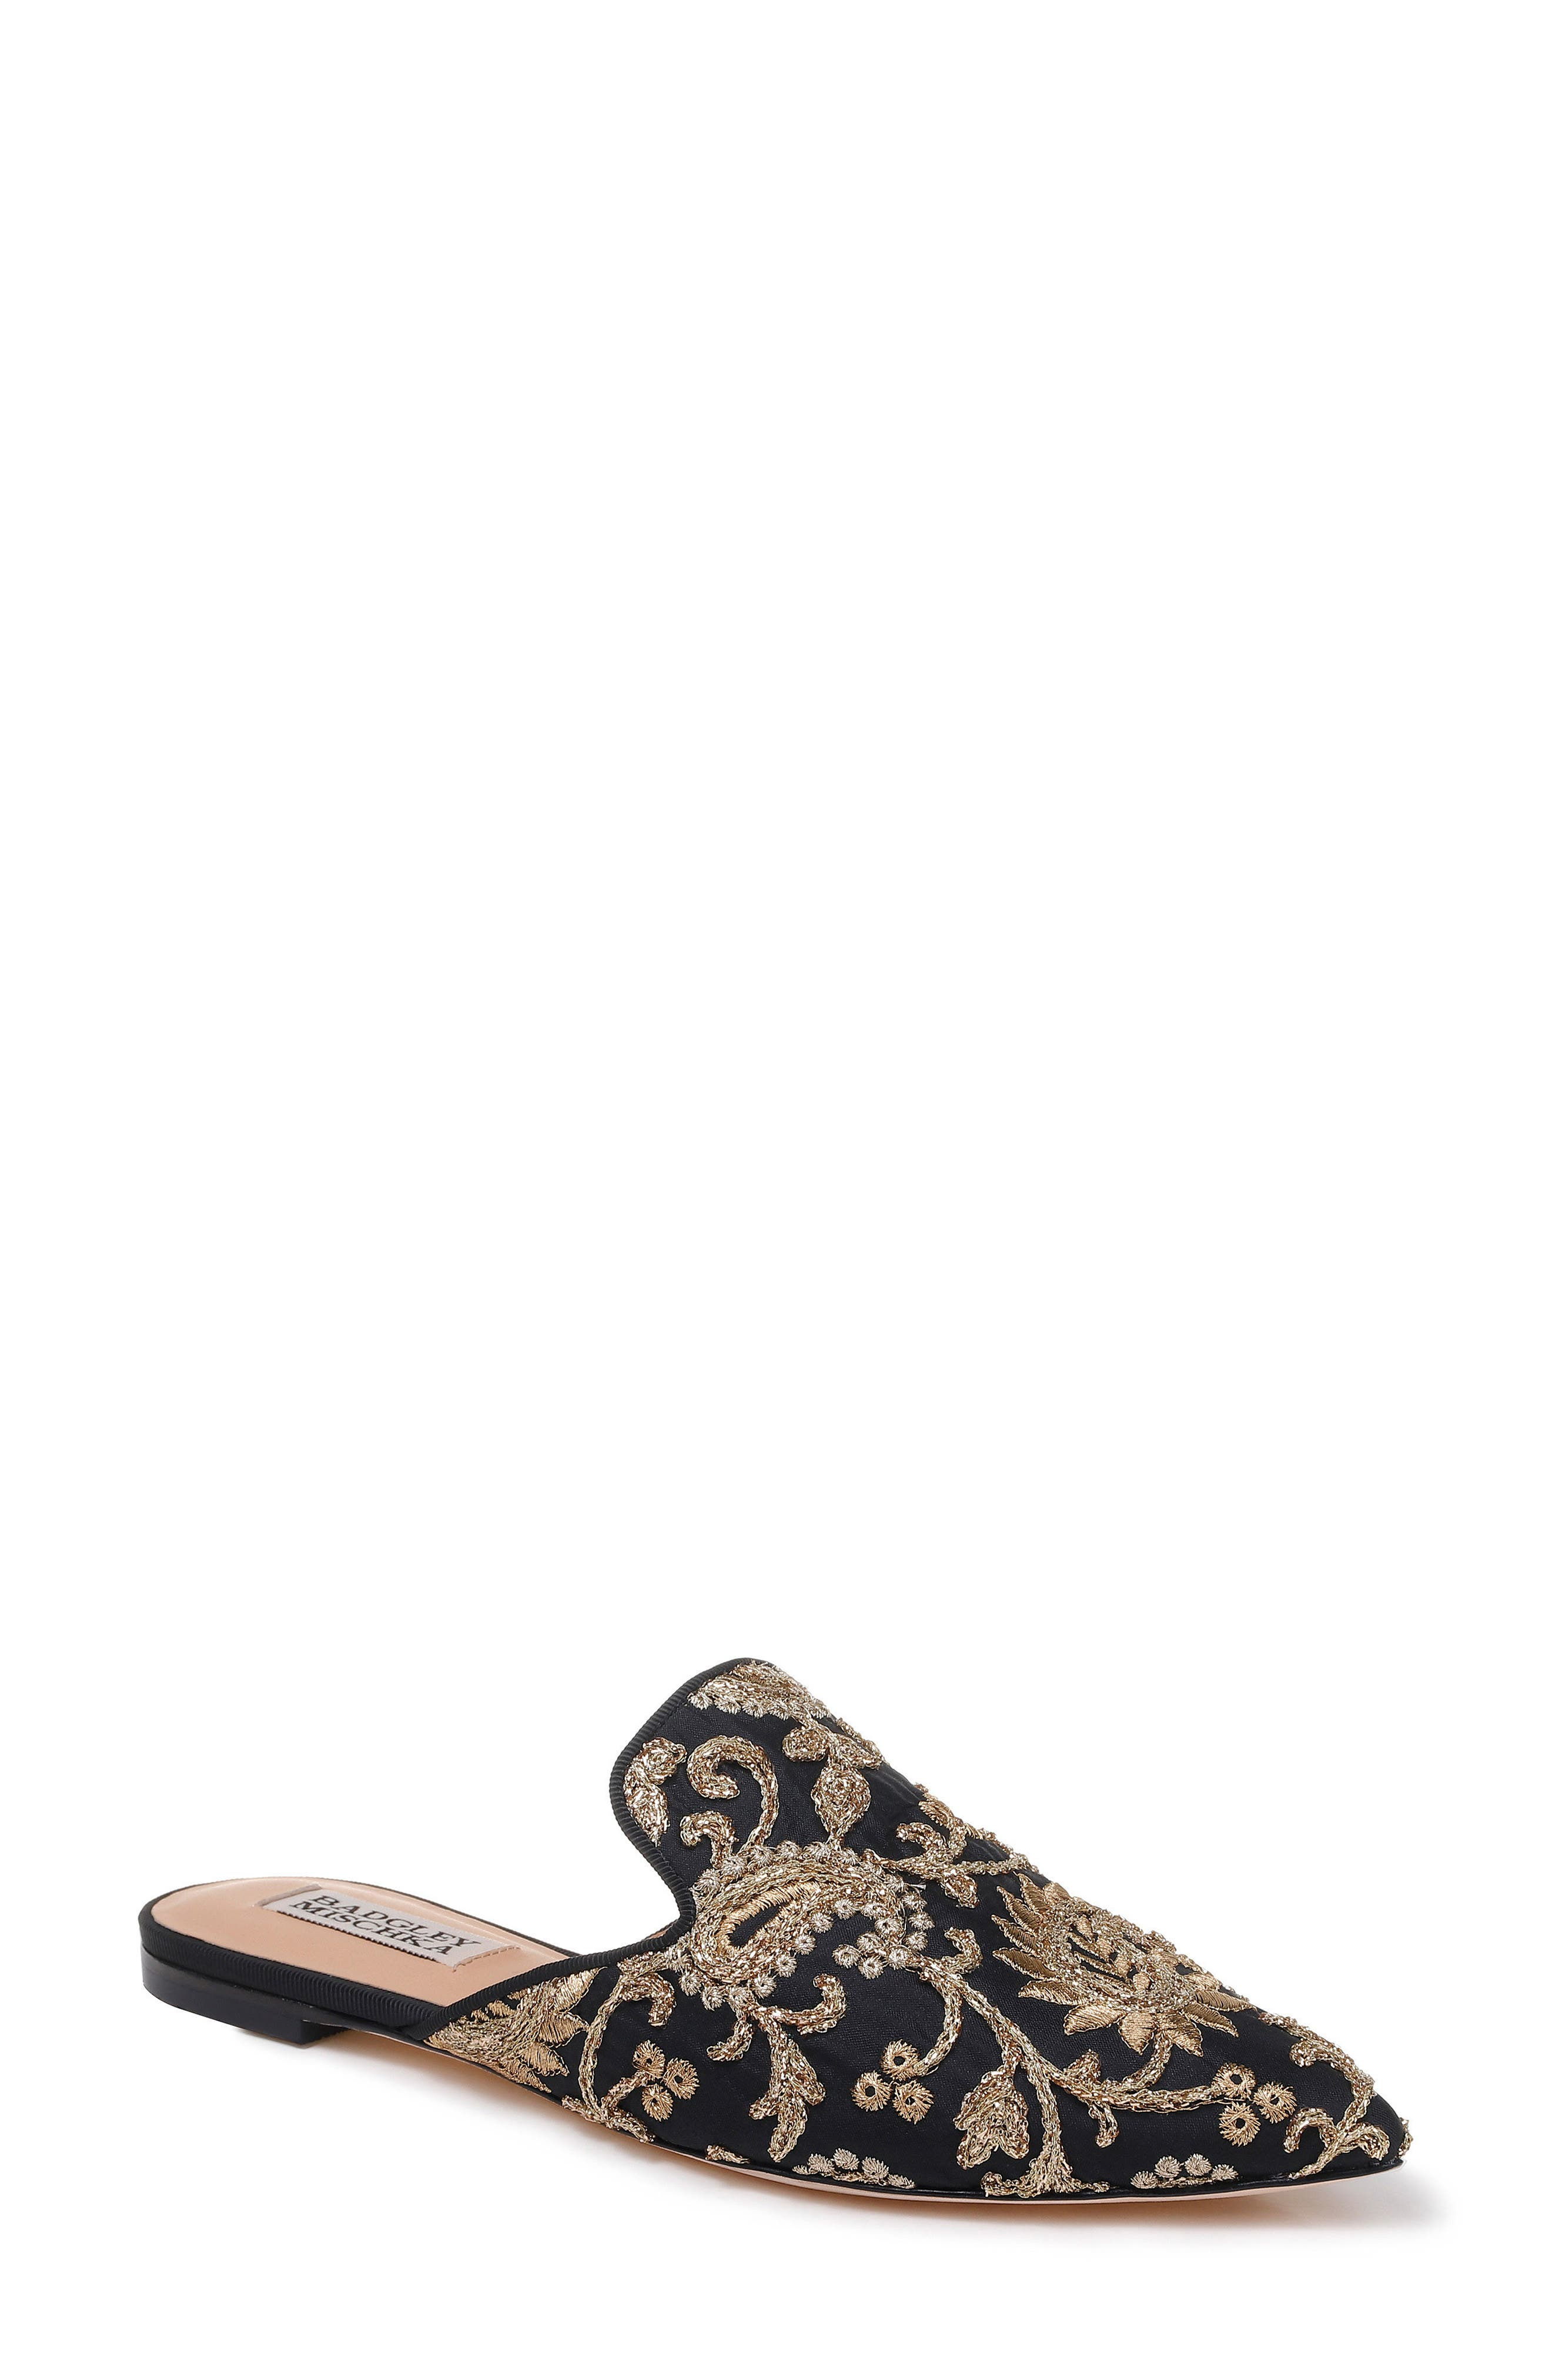 Phoebe Embroidered Mule,                             Main thumbnail 1, color,                             BLACK FABRIC